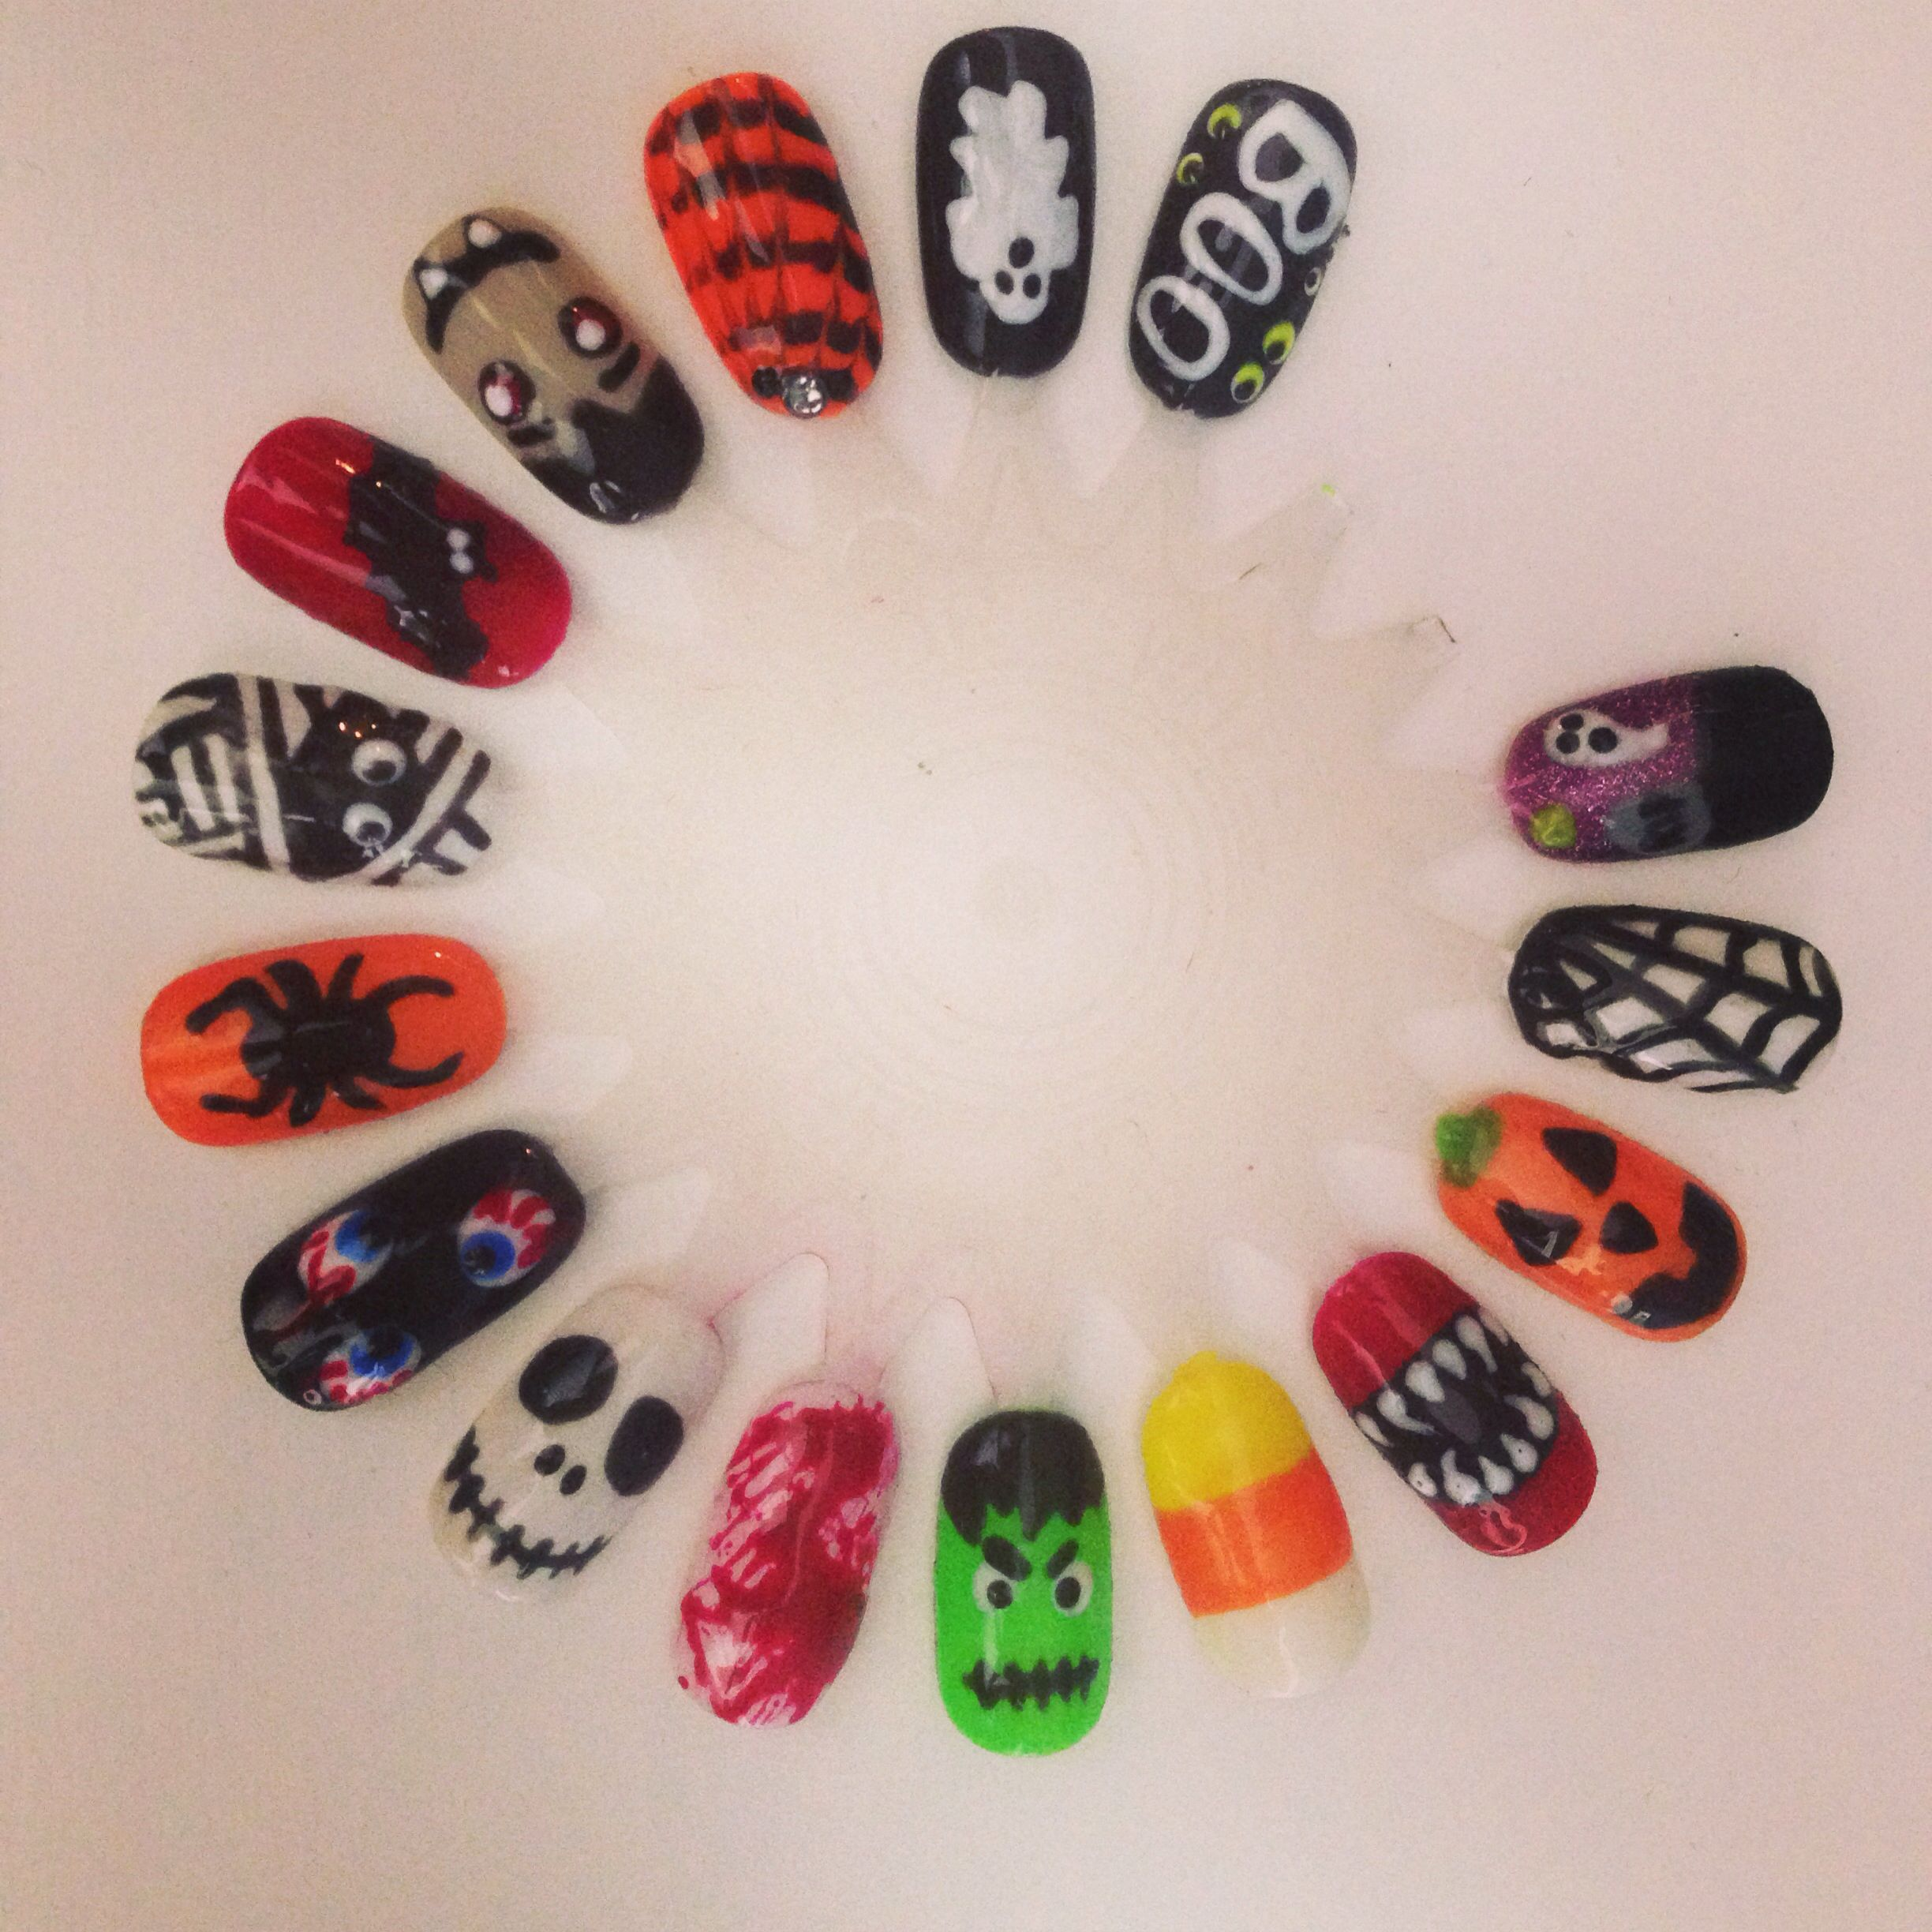 Halloween nail art by Casey Sutherland at The Urban Spa in Peterborough #halloween #nails #nailart #cute